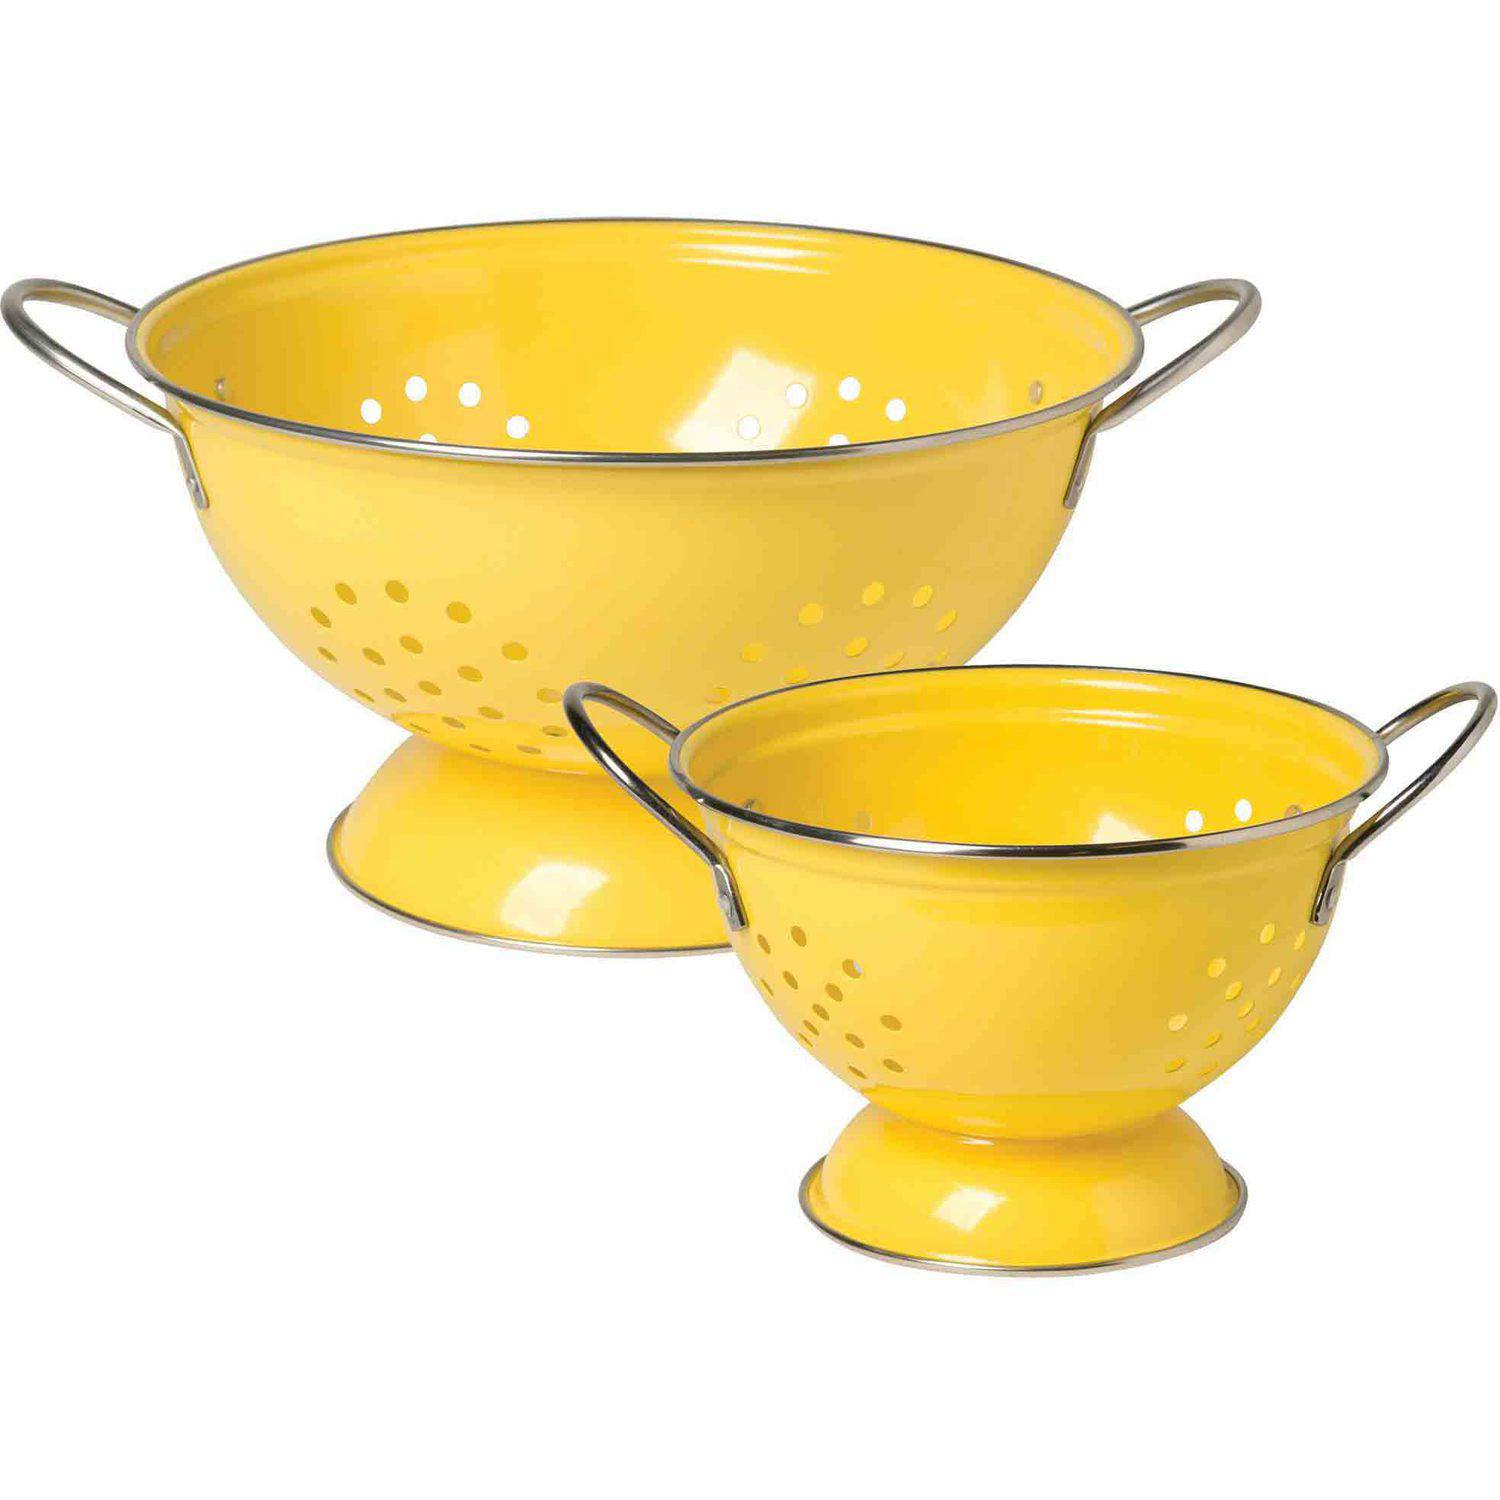 Now Designs Colander, Set of 2